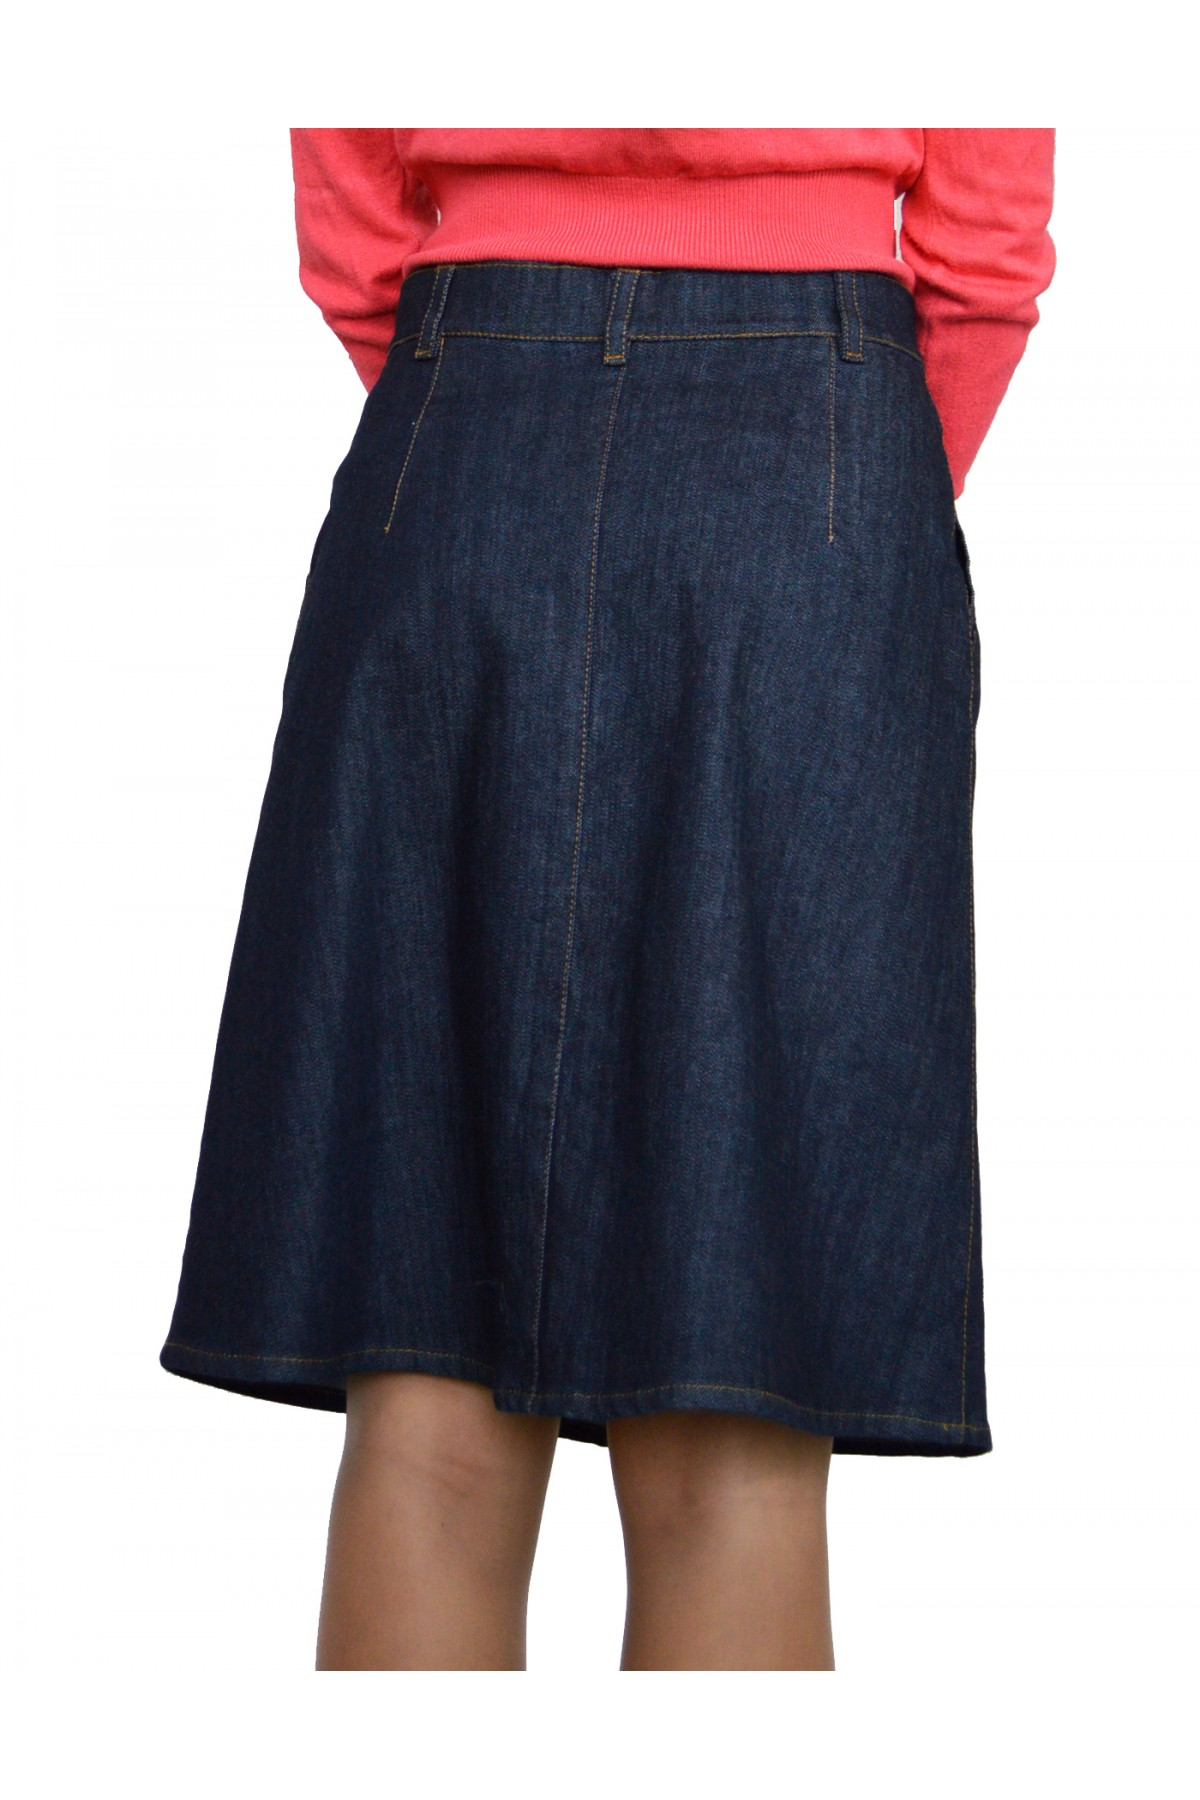 New Casual Knee Length A-line Blue Jeans Denim Skirt - F-selections